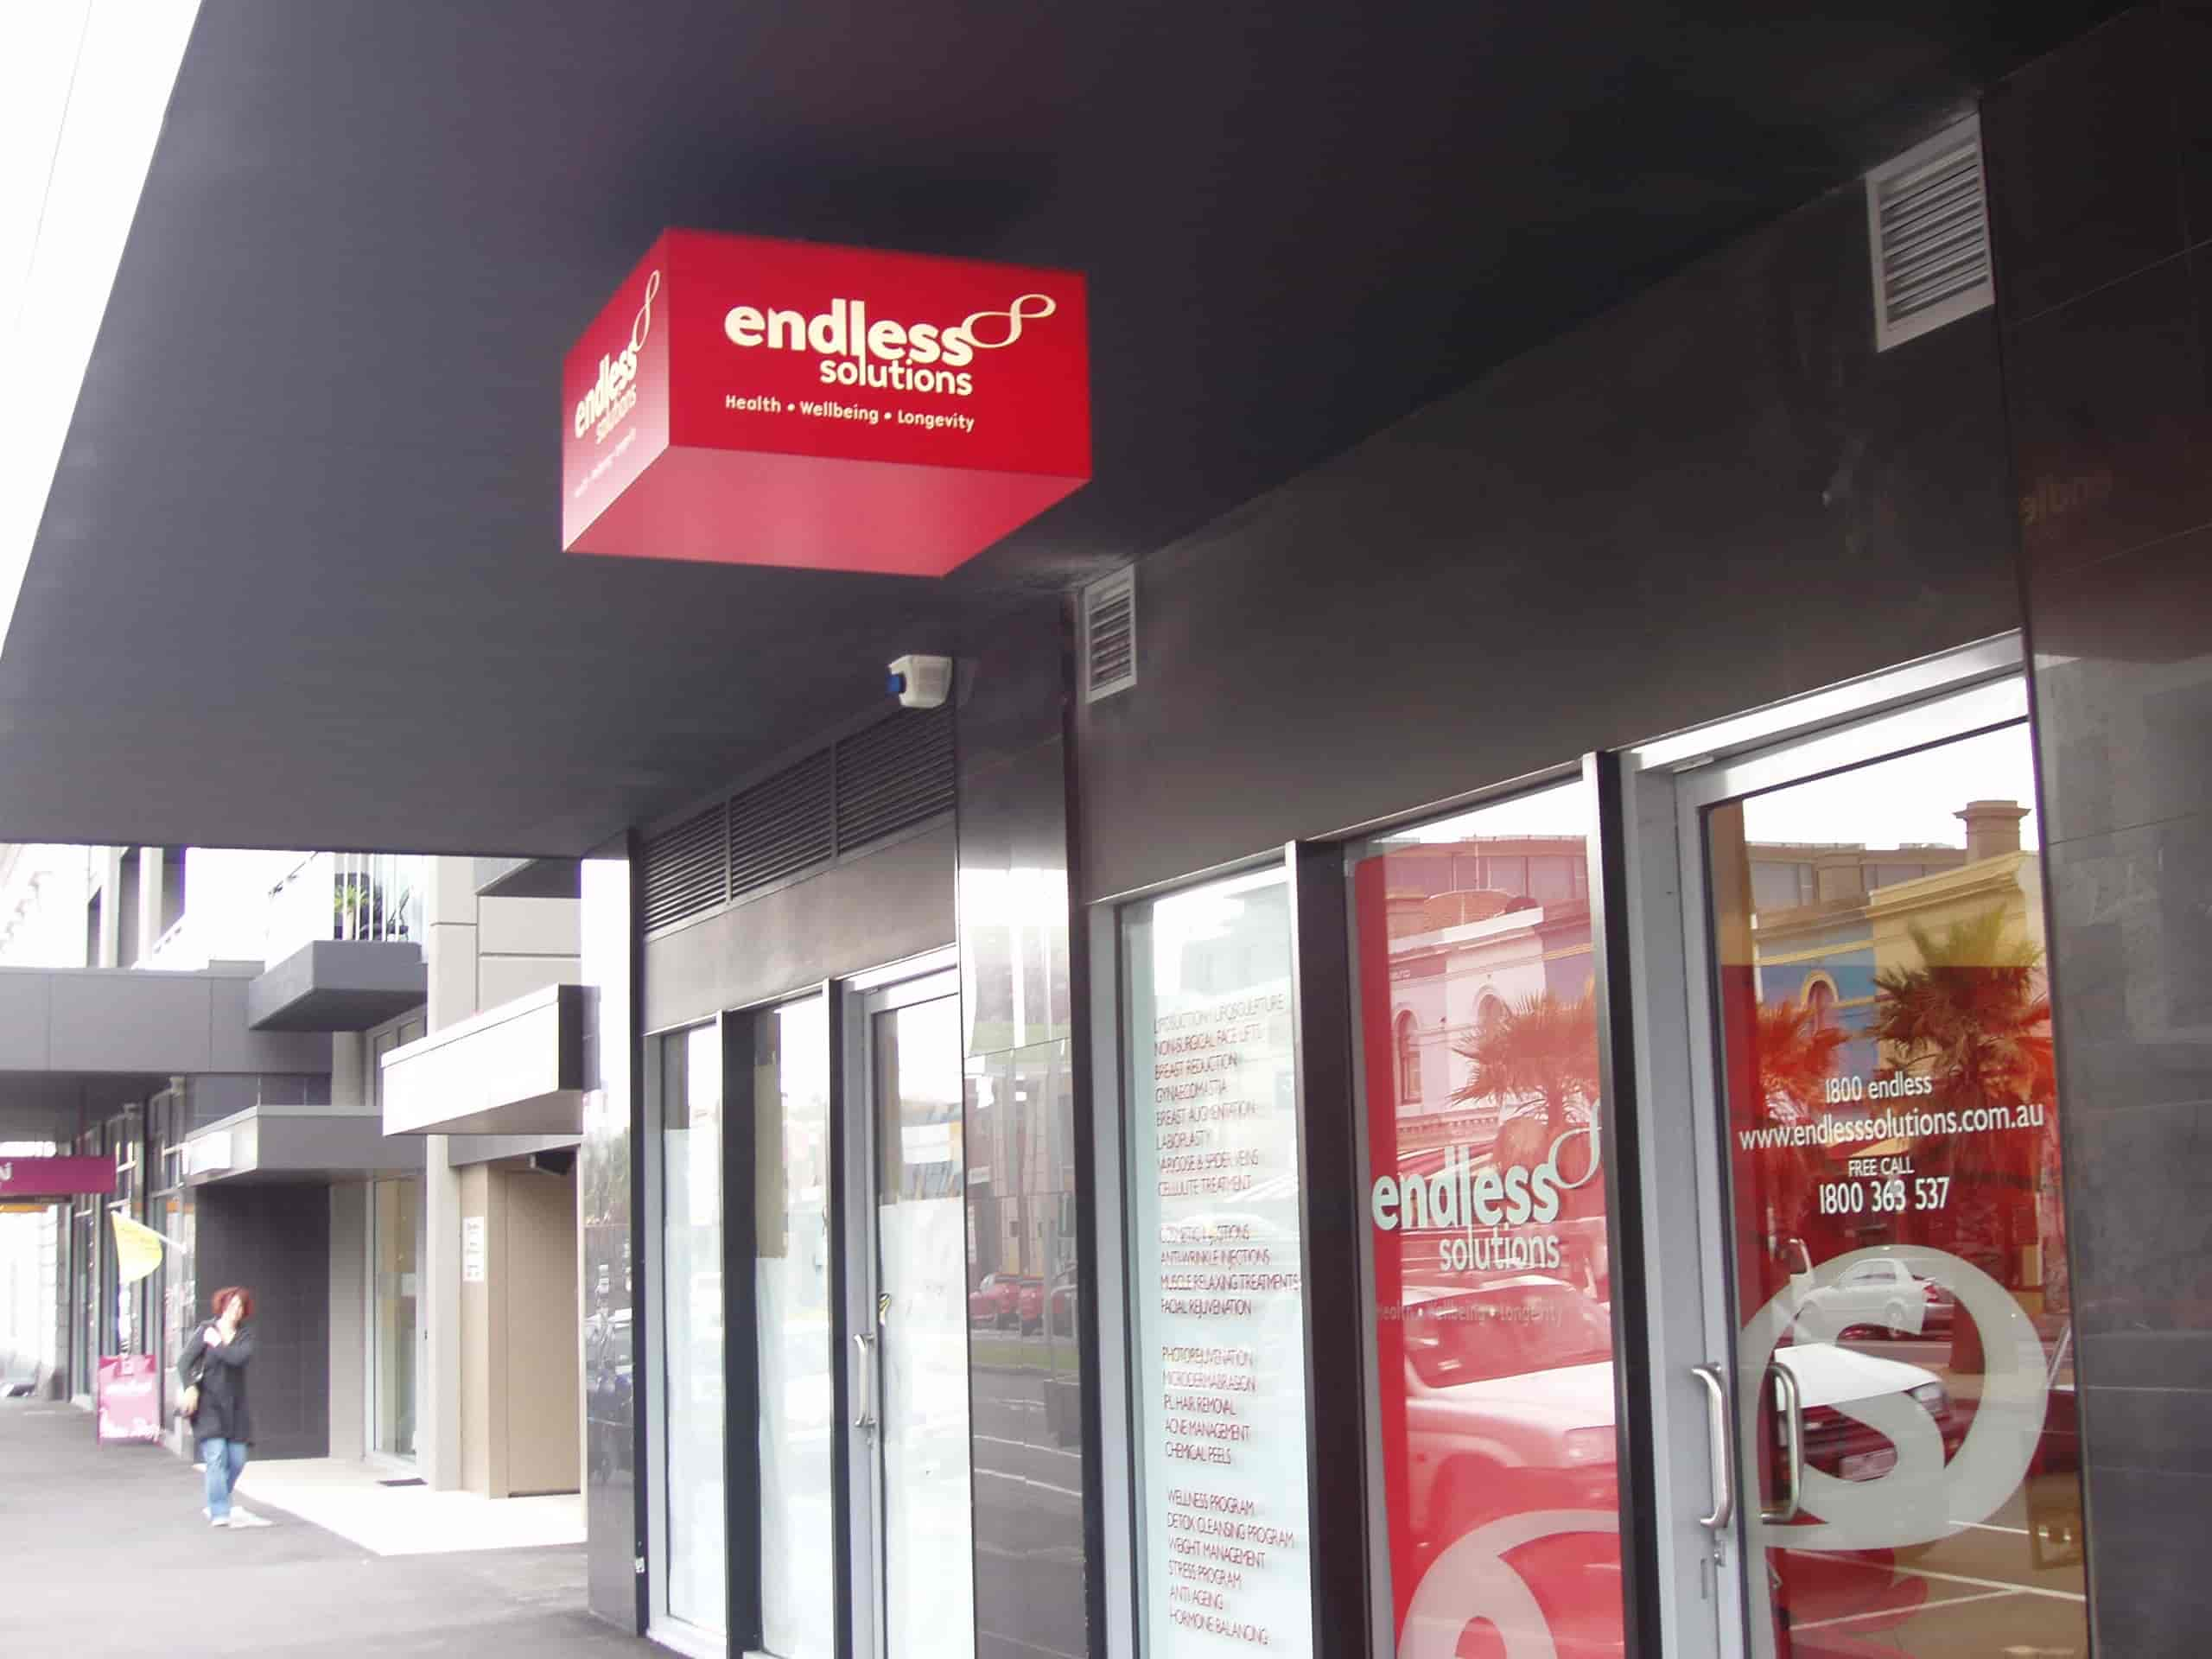 illuminated signs in Melbourne for endless solutions